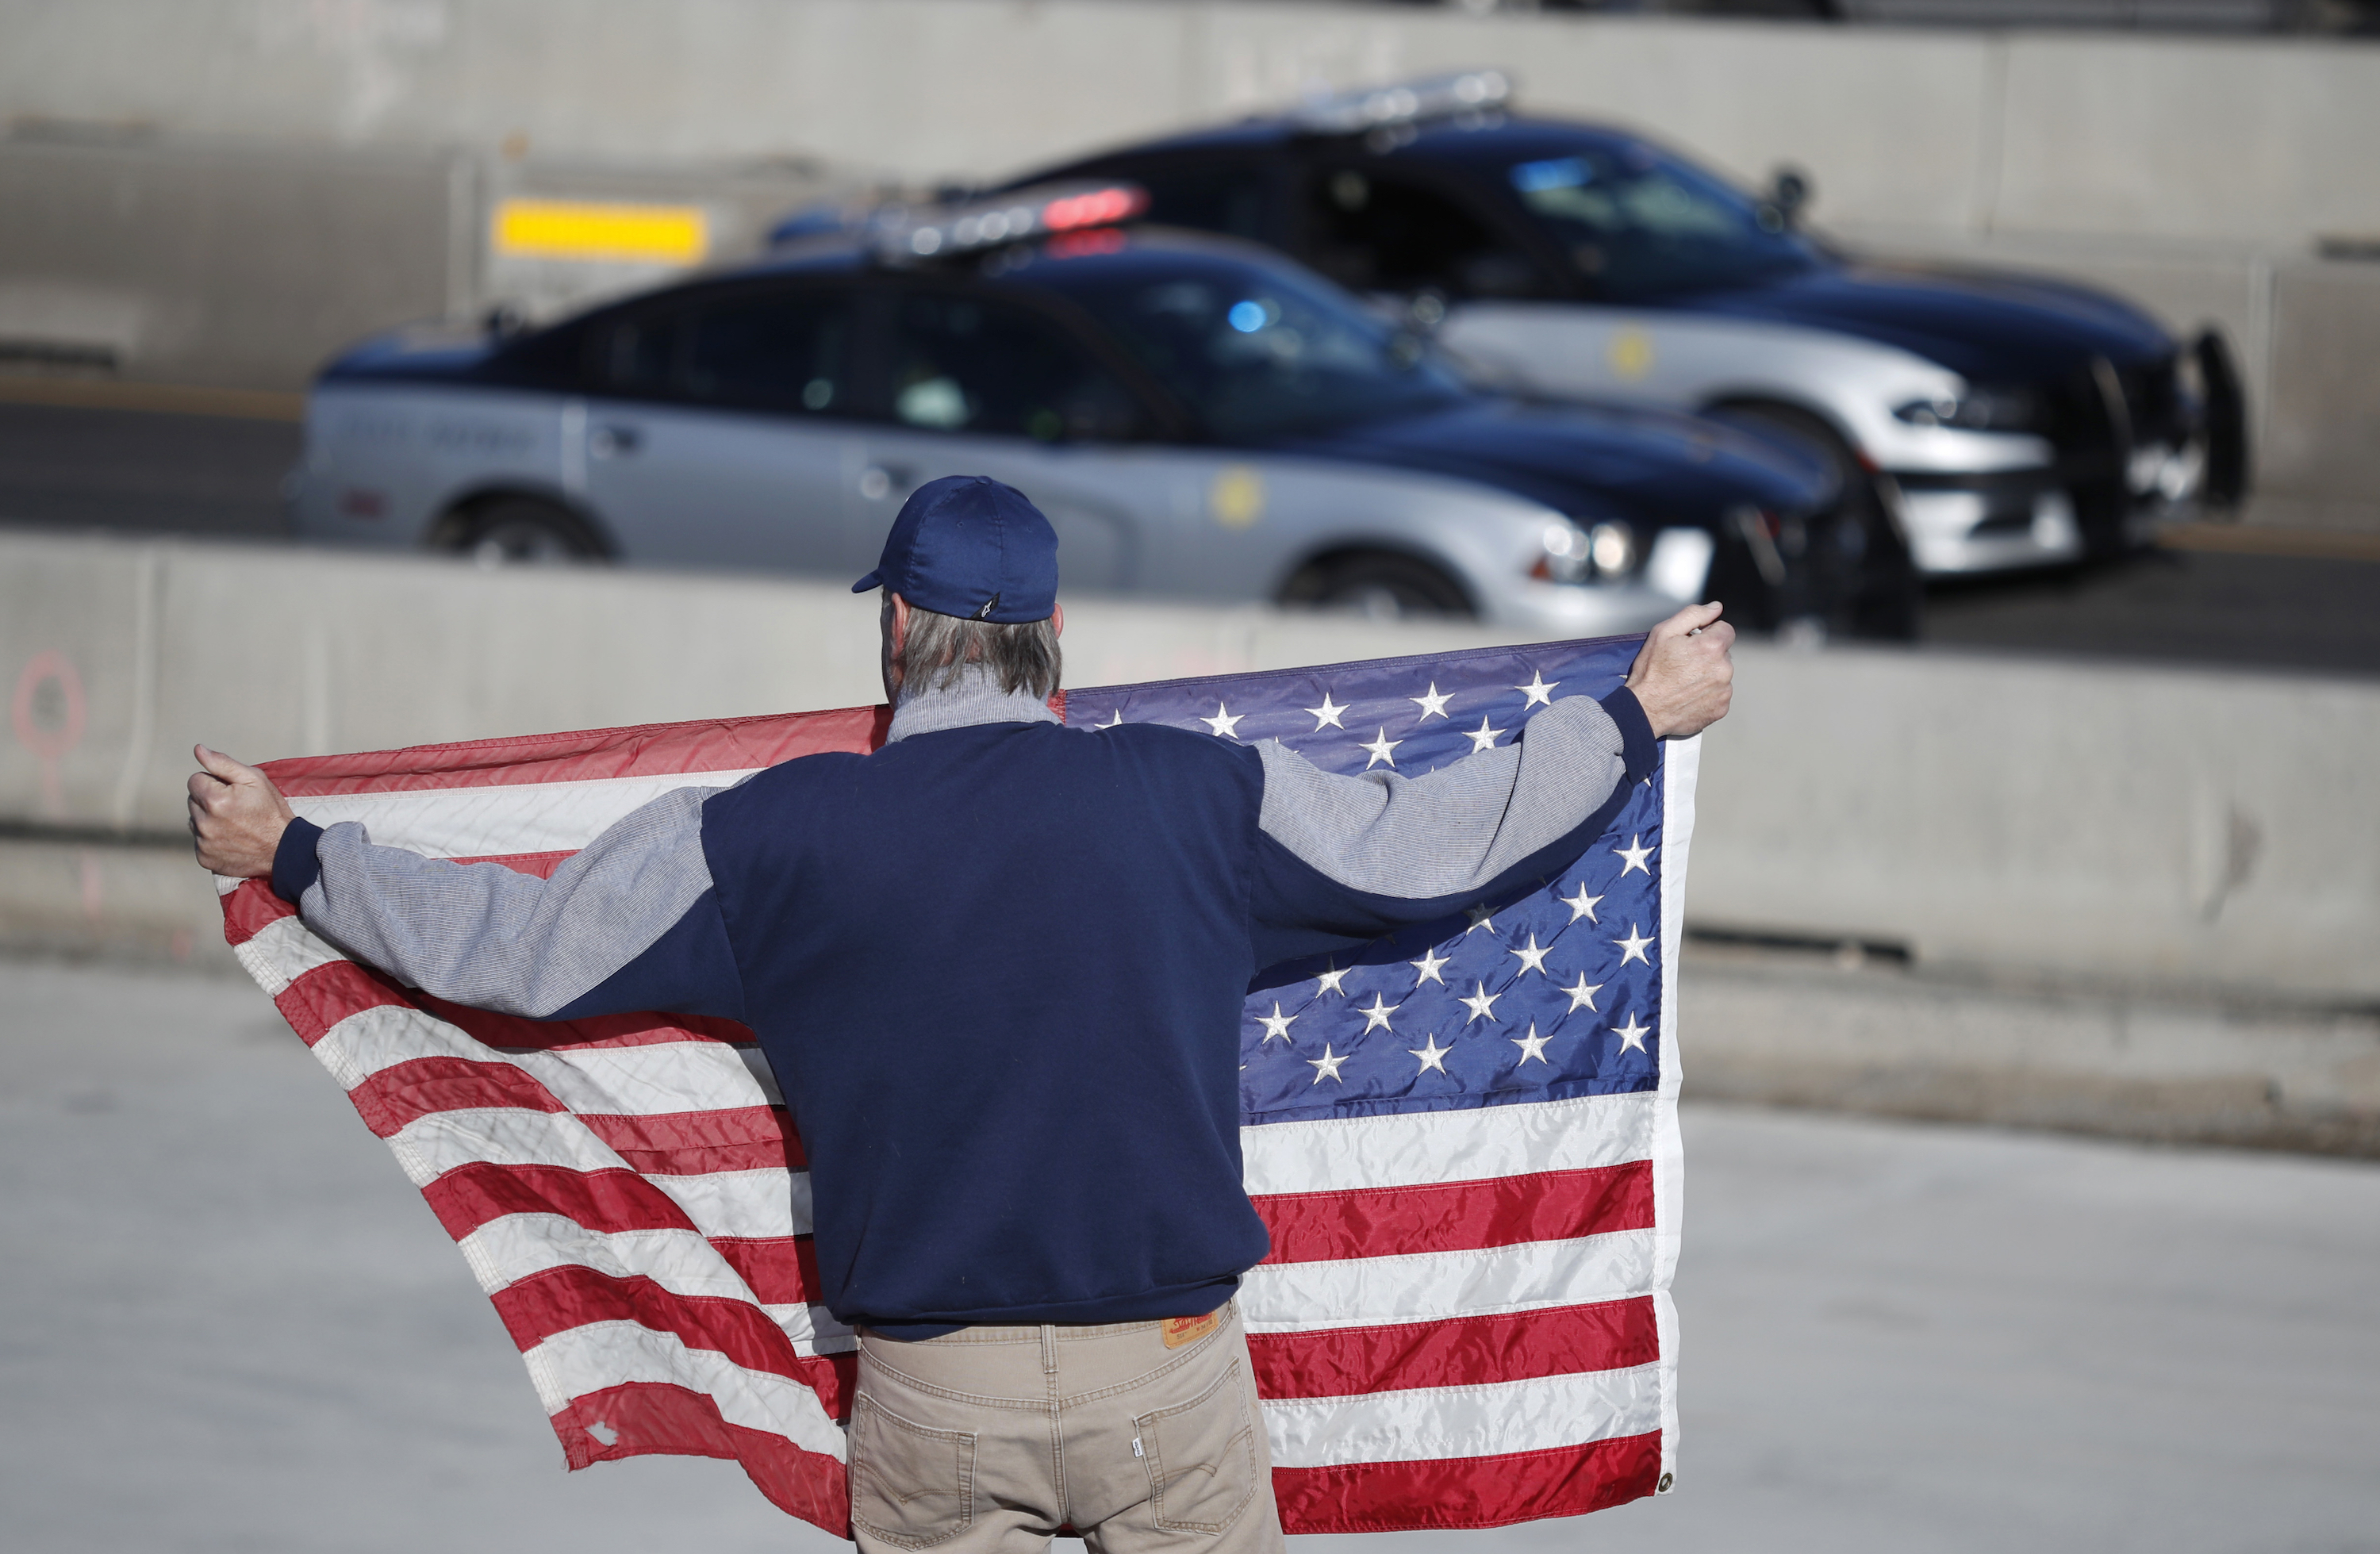 <p>David Morgan of Highlands Ranch, Colo., holds an American flag as a procession of law enforcement vehicles accompanies a hearse carrying the body of a sheriff's deputy shot and killedSunday, Dec. 31, 2017, in Highlands Ranch, Colo.</p>